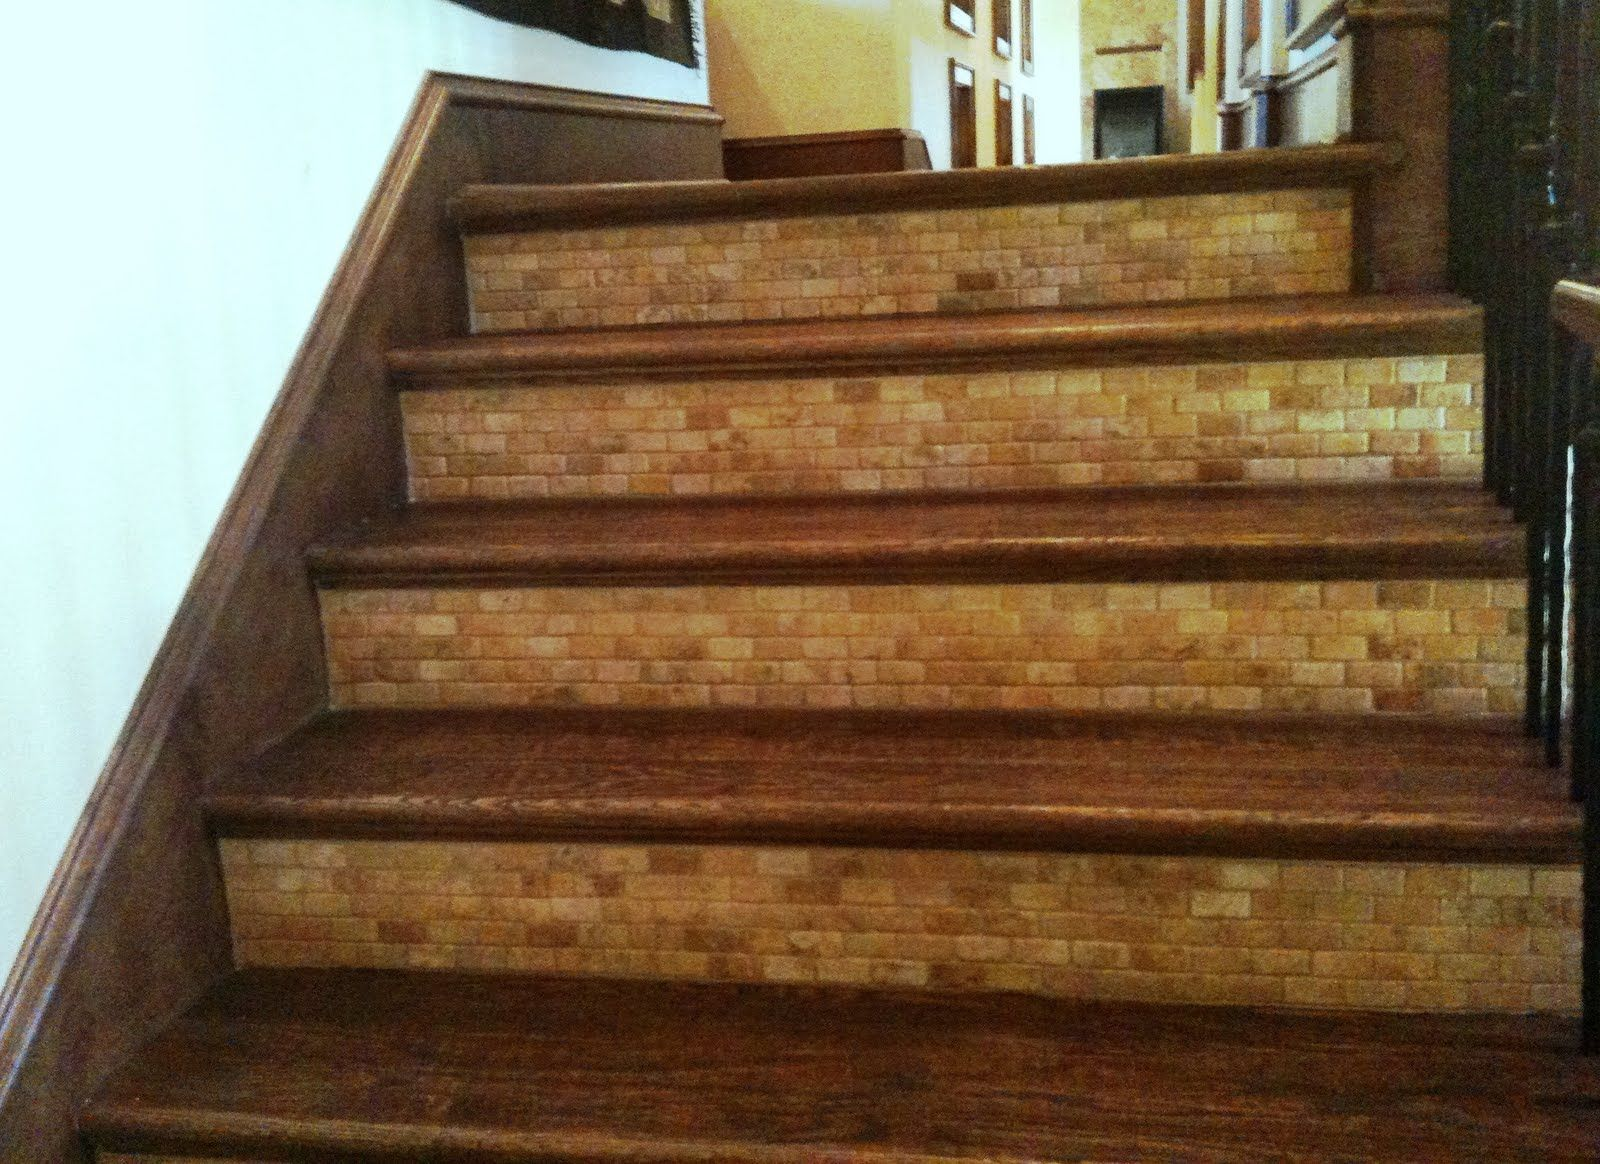 North Dallas Real Estate Spruce Up Your Stairs Tile Stairs   Wood And Tile Stairs   Rocell Living Room   Tile Floor   Basement   Quarter Round Stair Hardwood   White